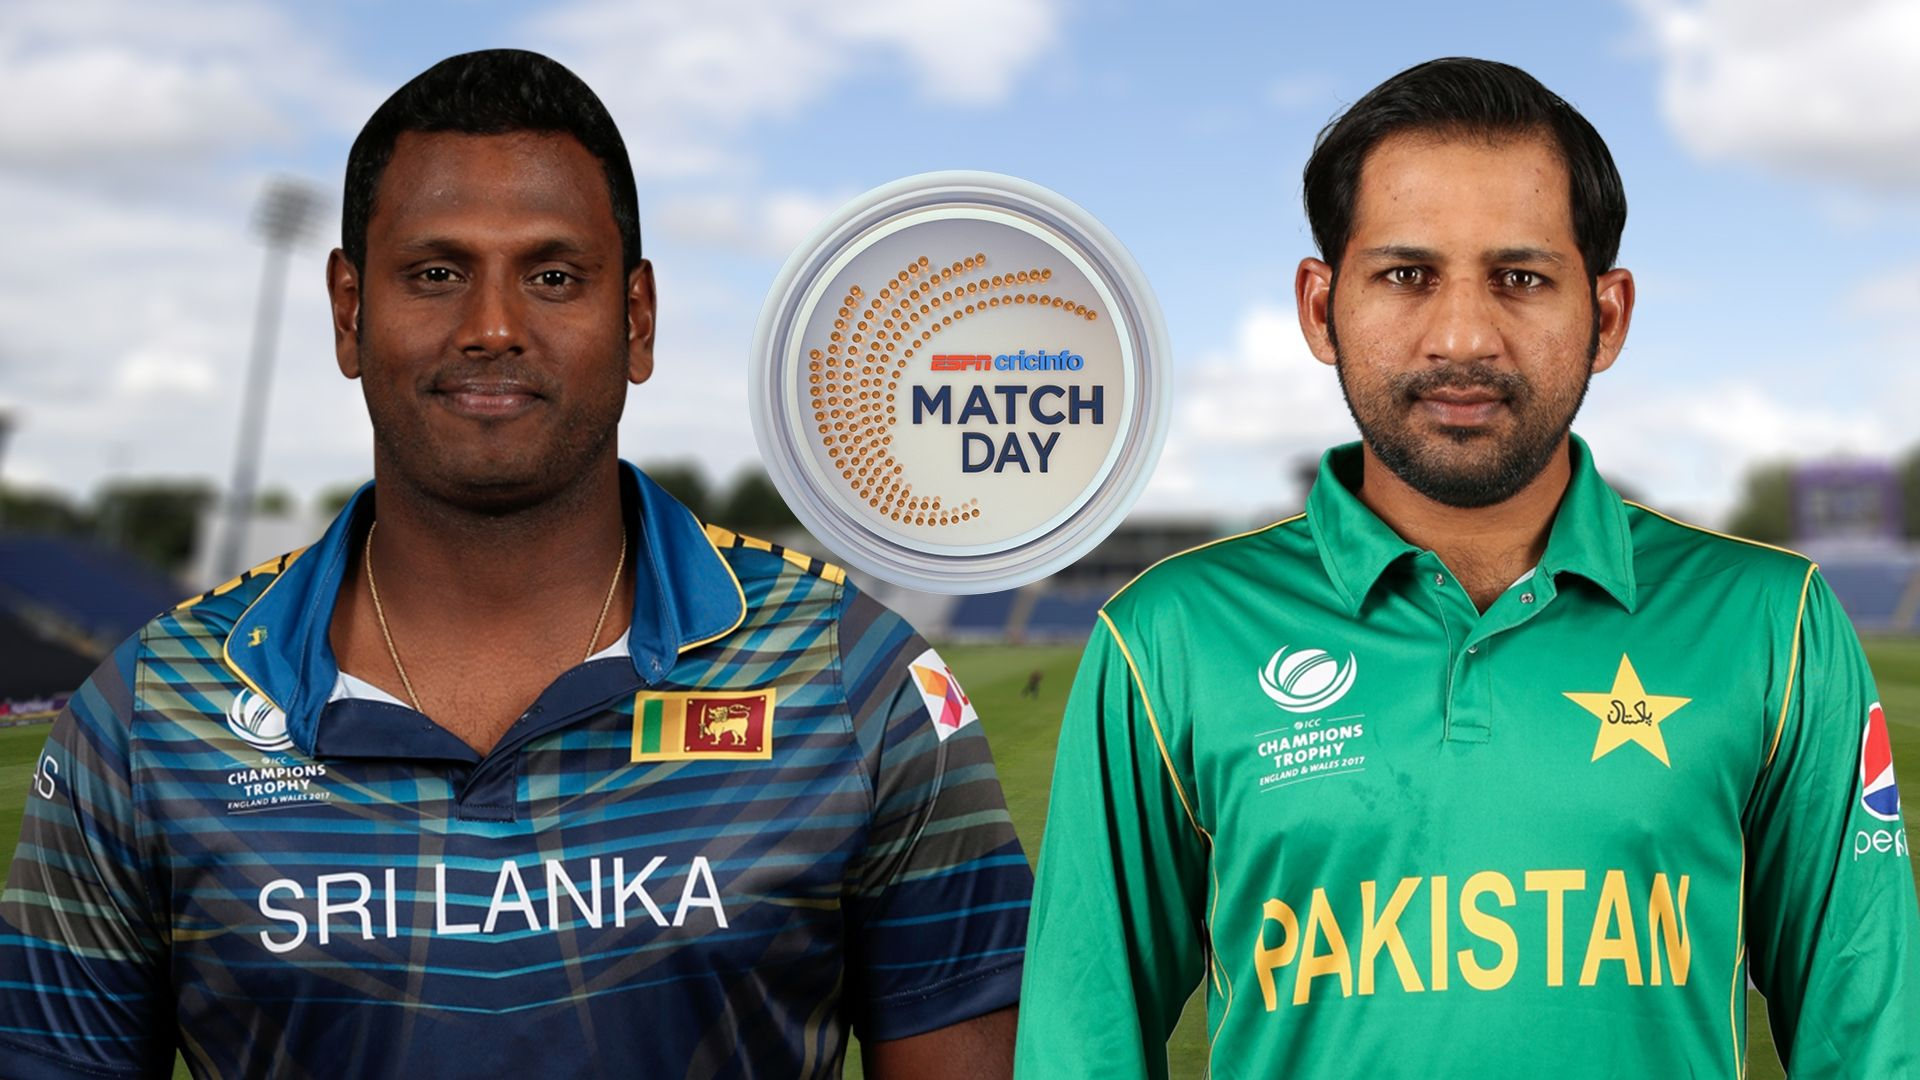 Pakistan Vs Srilanka 2nd Test Day 5 Today Match Prediction